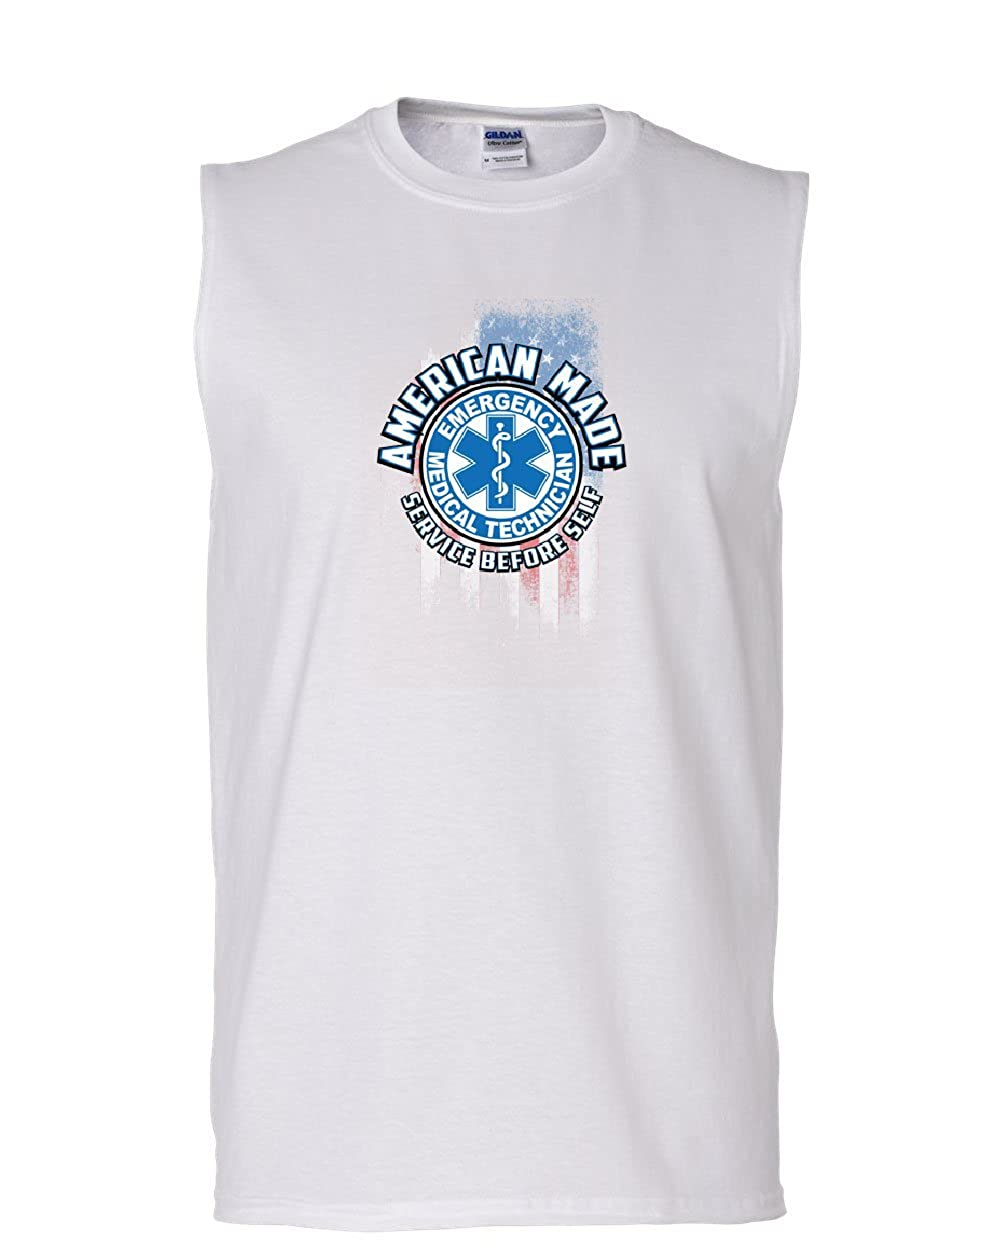 Tee Hunt EMT Service Before Self Muscle Shirt American Made First Responders Sleeveless